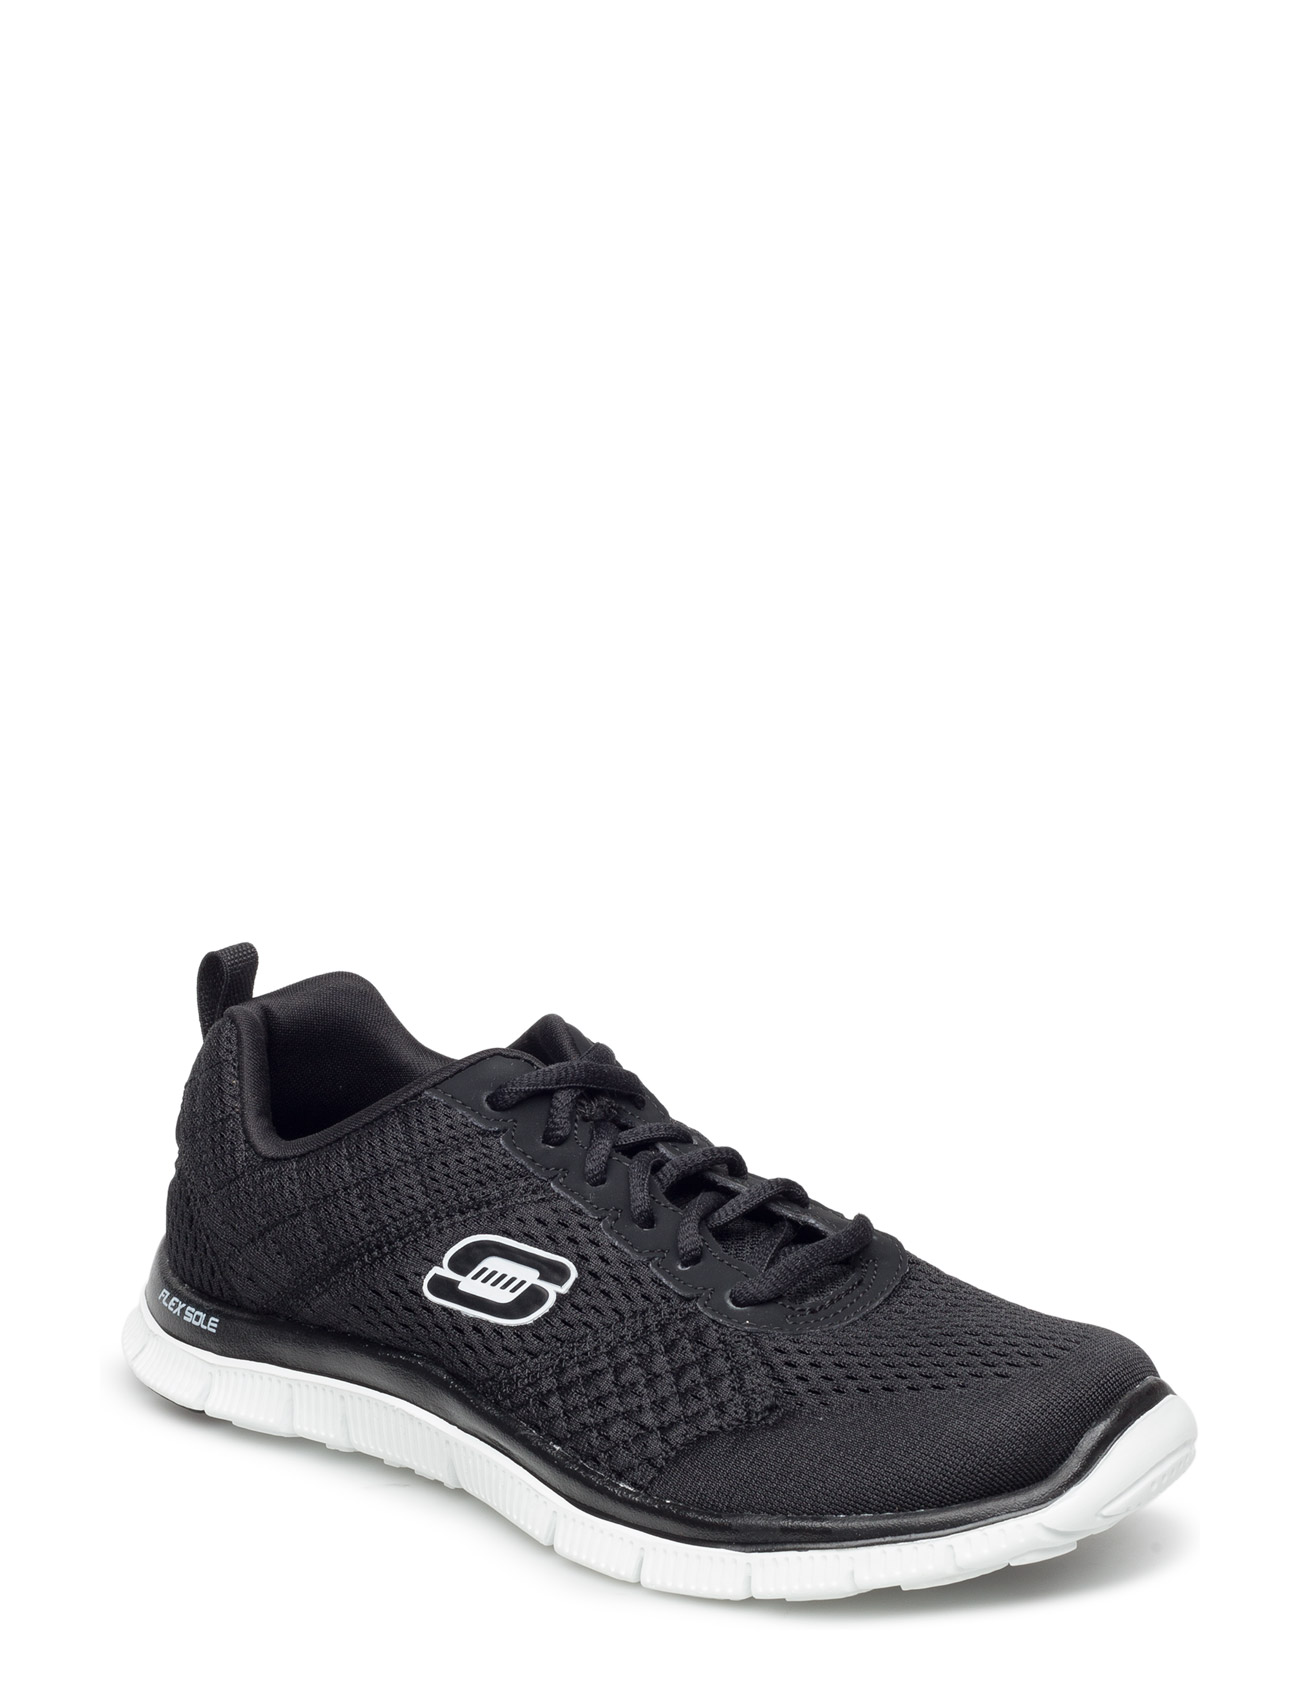 Womans Flex Appeal - Obvious Choice Skechers Sneakers til Damer i